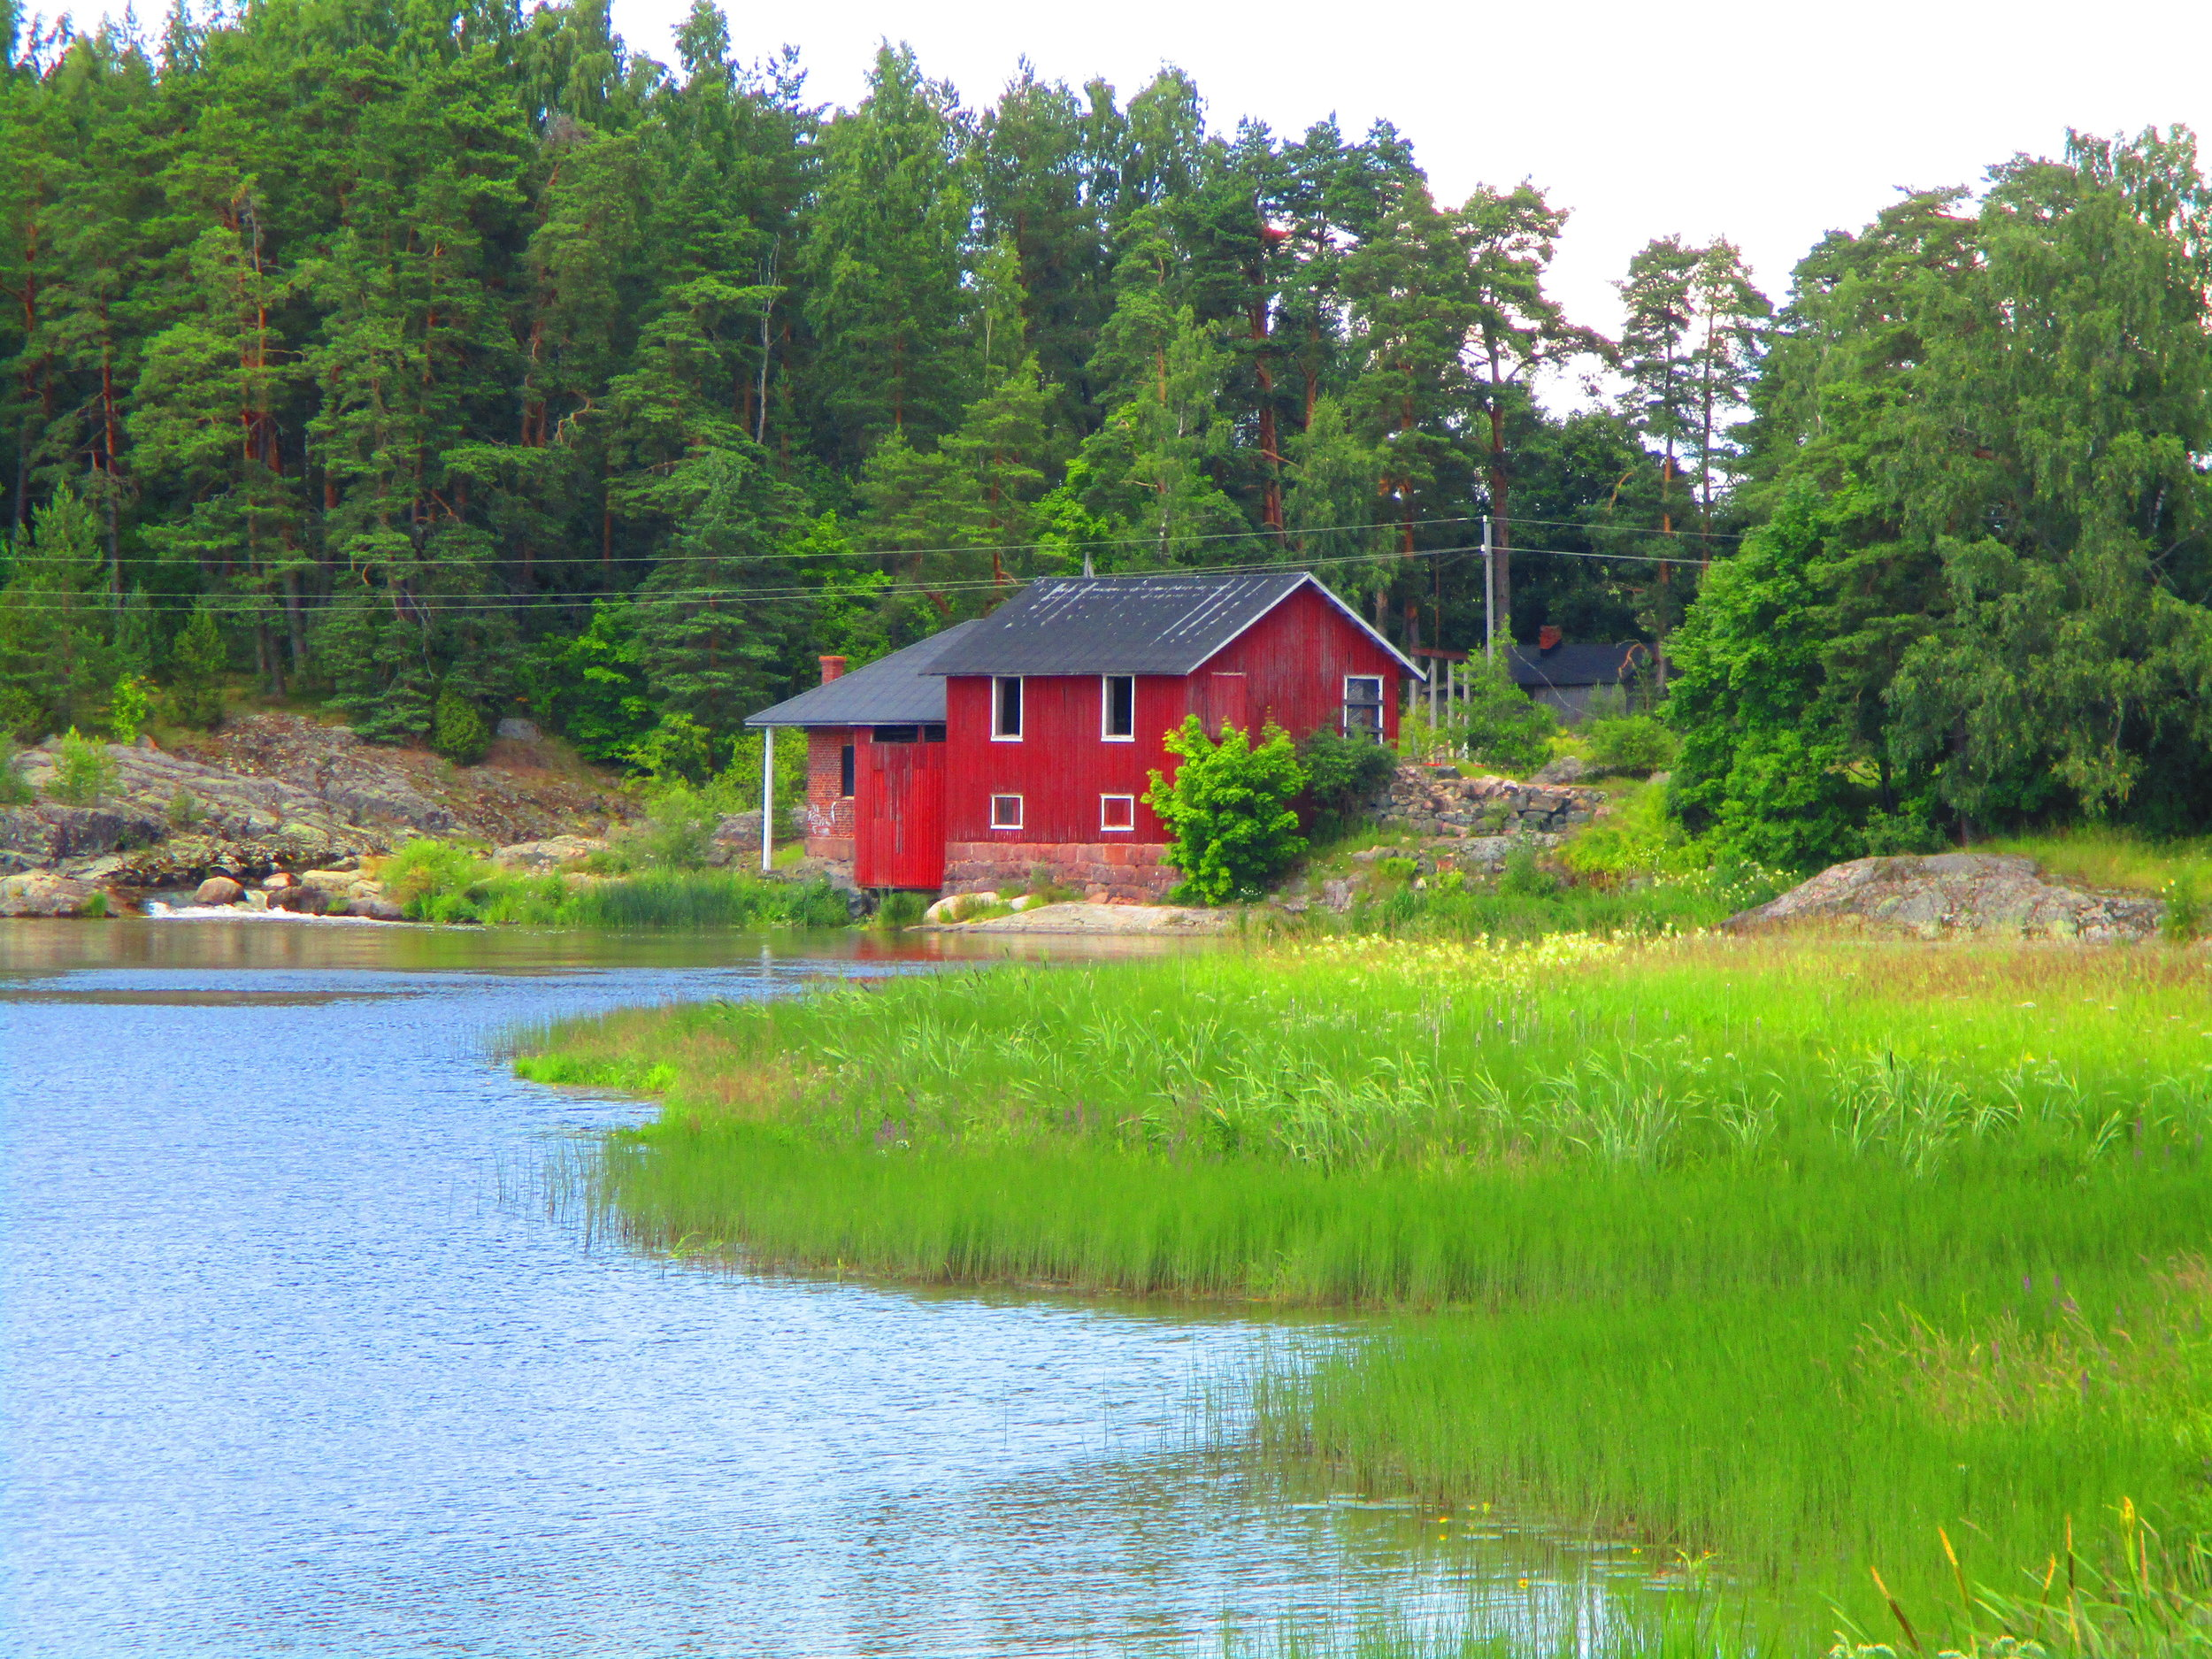 Finland - a house by water